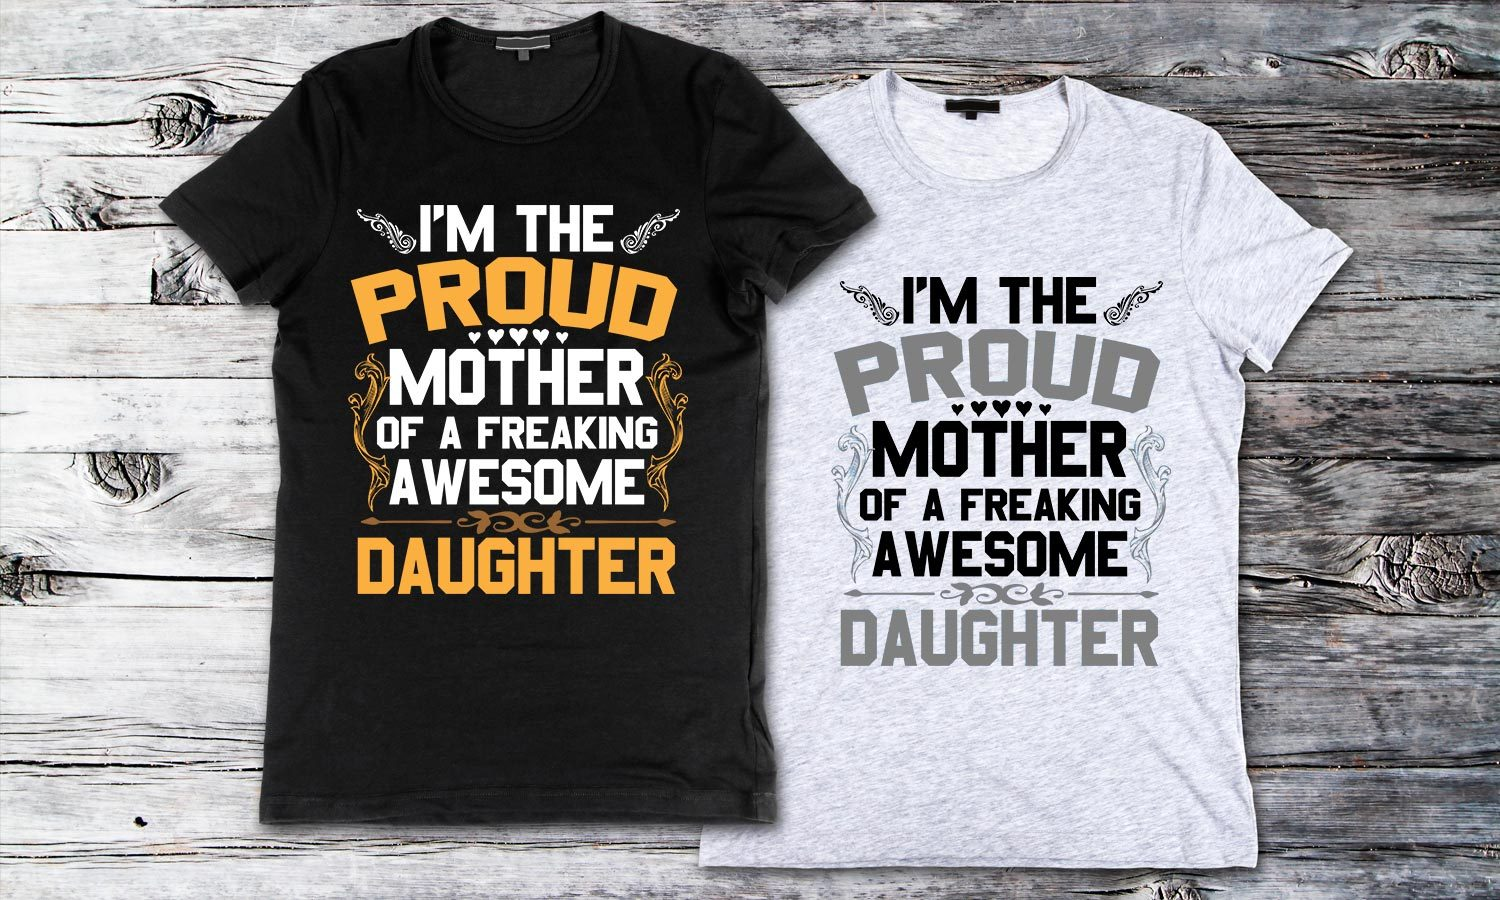 Proud Mother - Printed T-Shirt for Men, Women and Kids - TS181